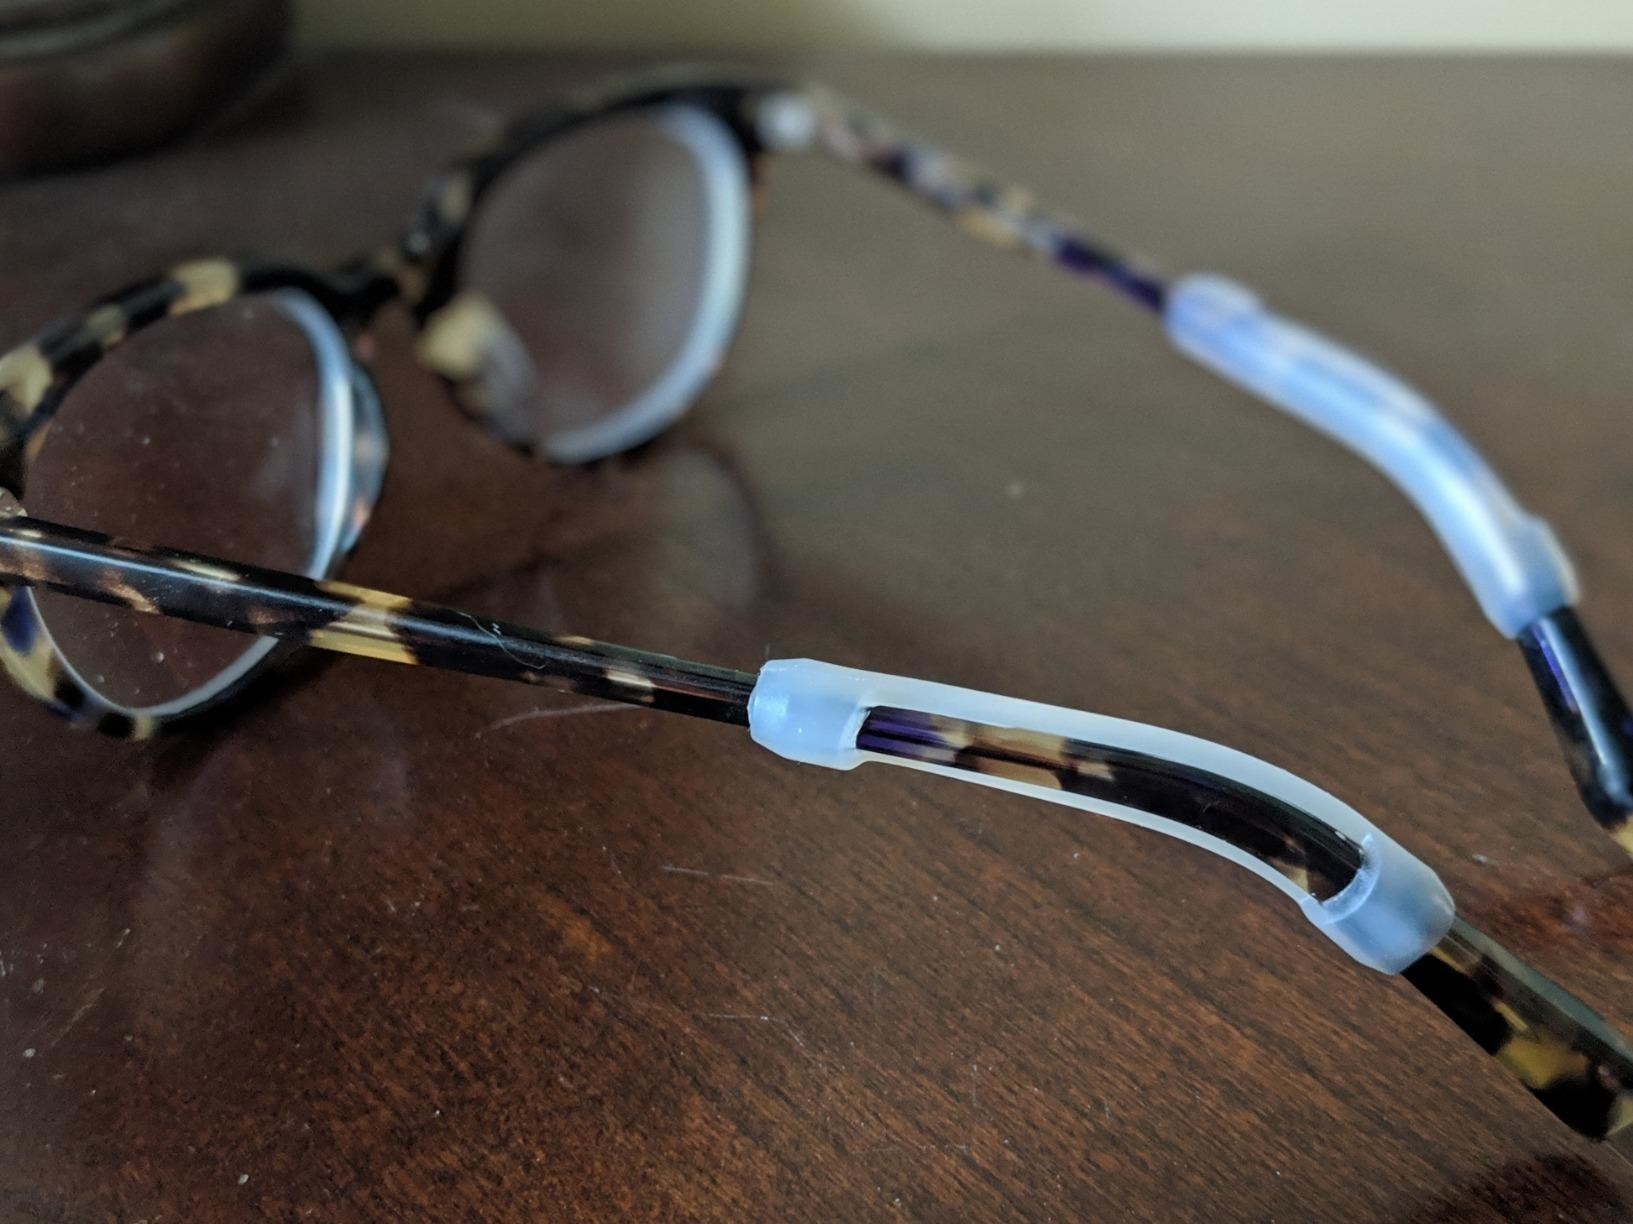 Reviewer photo of the grips on the arms of their glasses